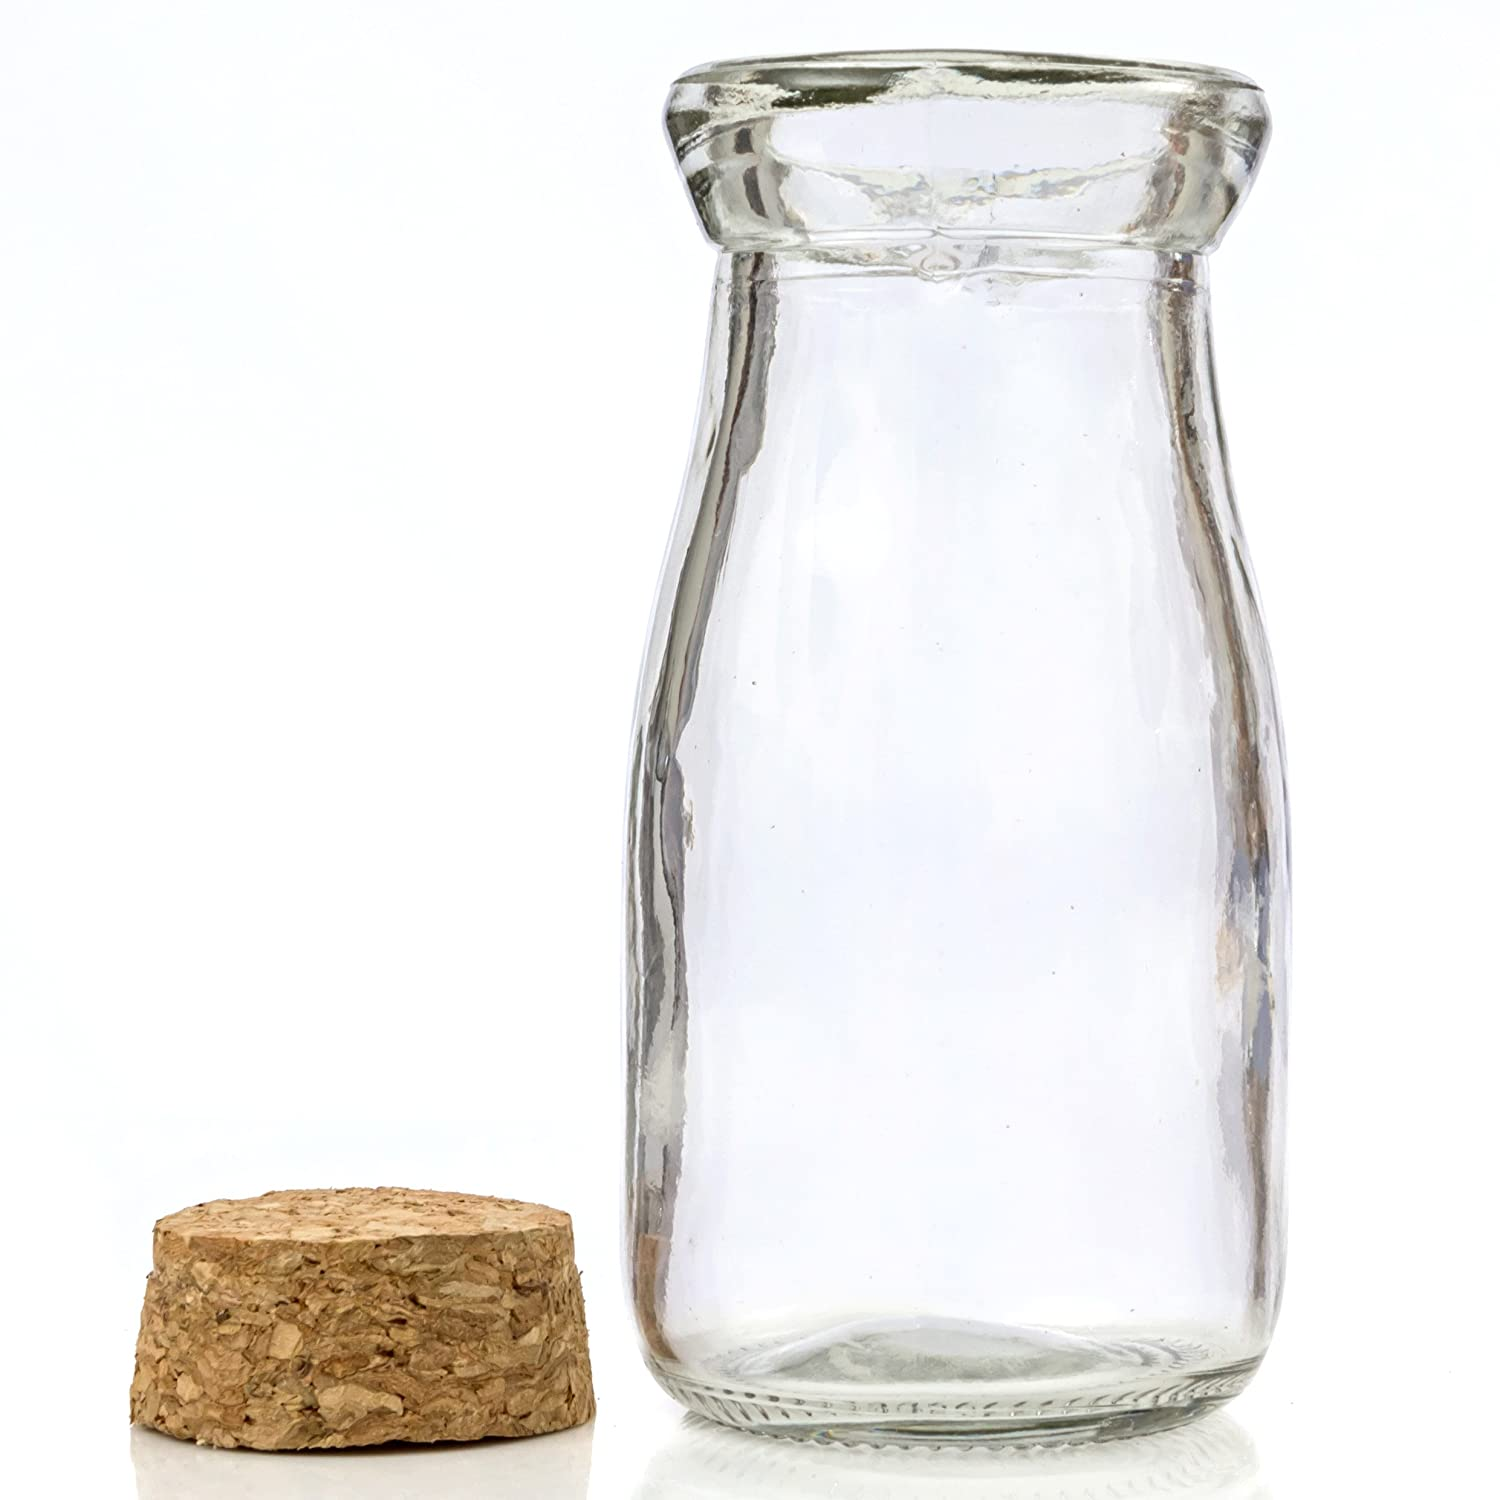 Amazon mini vintage glass milk bottles with cork 24 pieces amazon mini vintage glass milk bottles with cork 24 pieces for favors parties home kitchen reviewsmspy